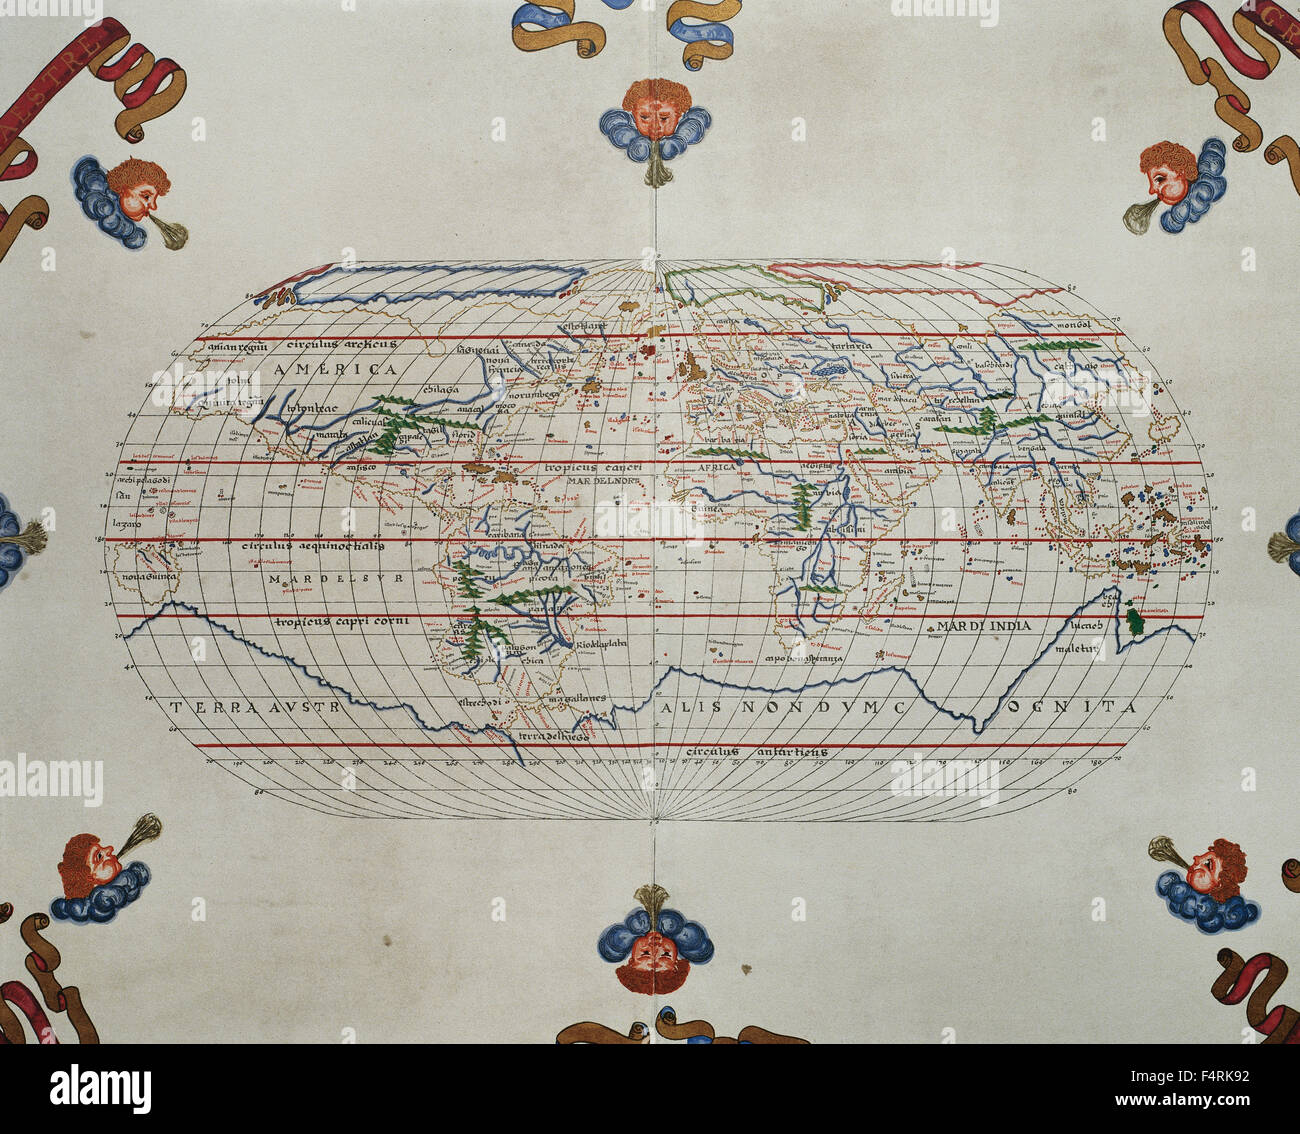 Portolan atlas of the world by Joan Martines (1556-1590). Messina, 1587. National Library. Madrid. Spain. - Stock Image